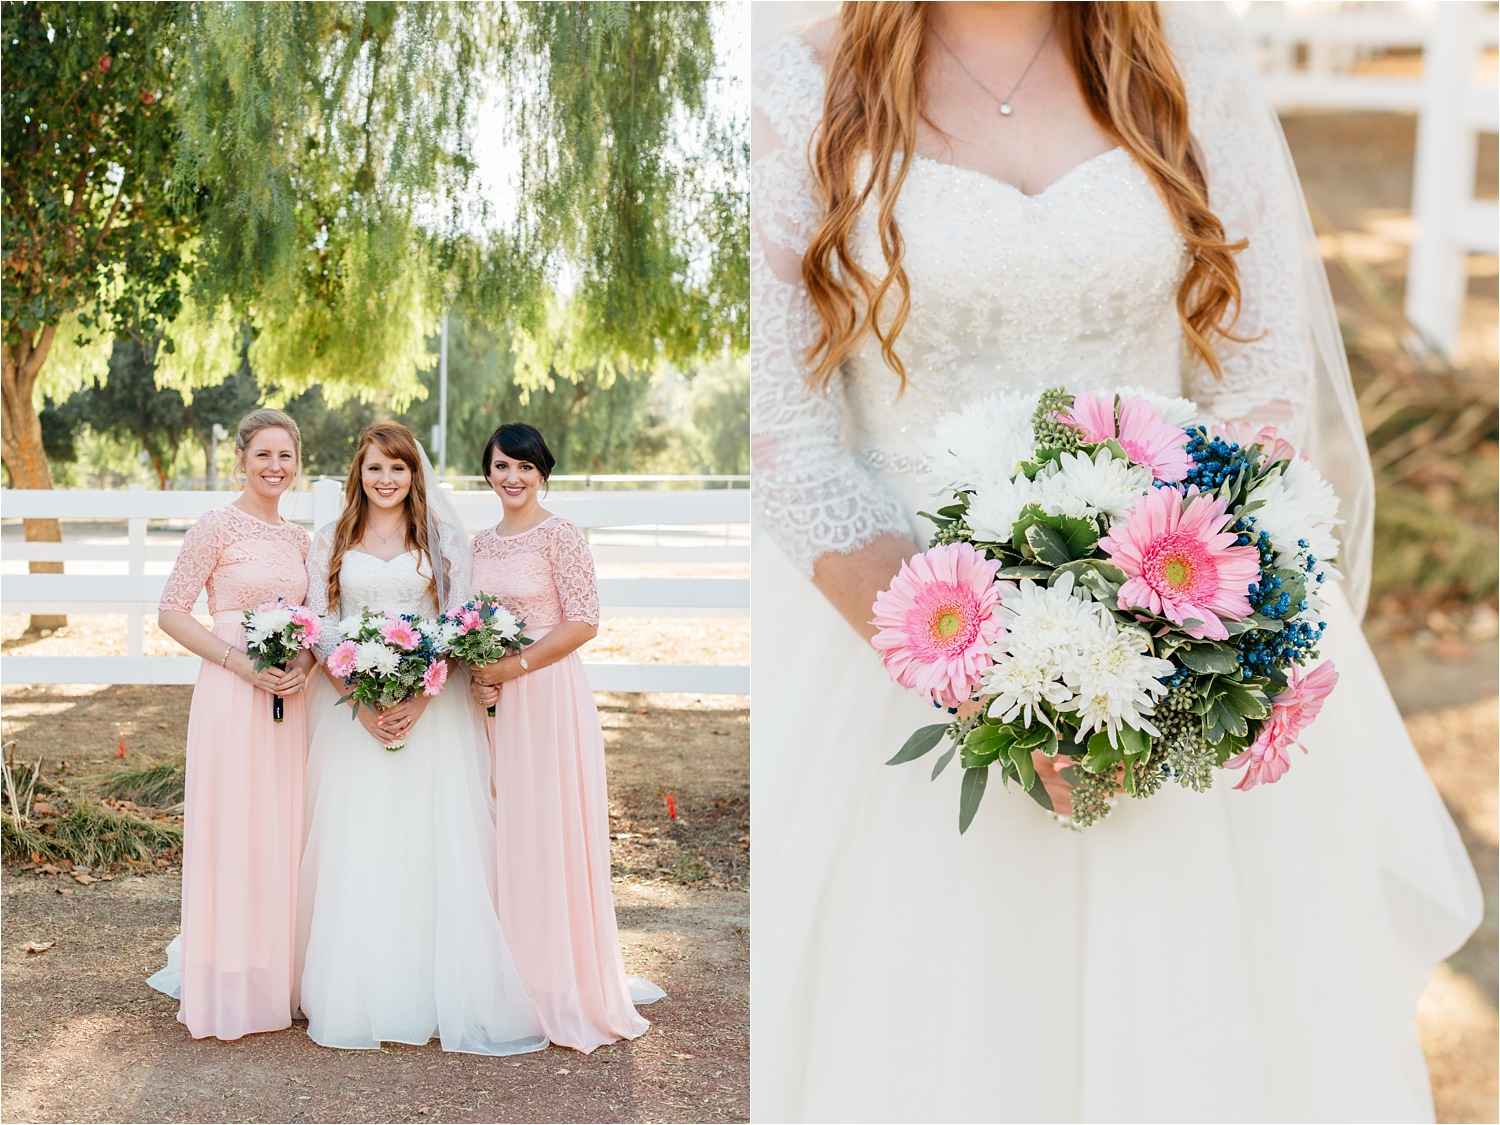 Chino Hills Wedding Photographer - https://brittneyhannonphotography.com